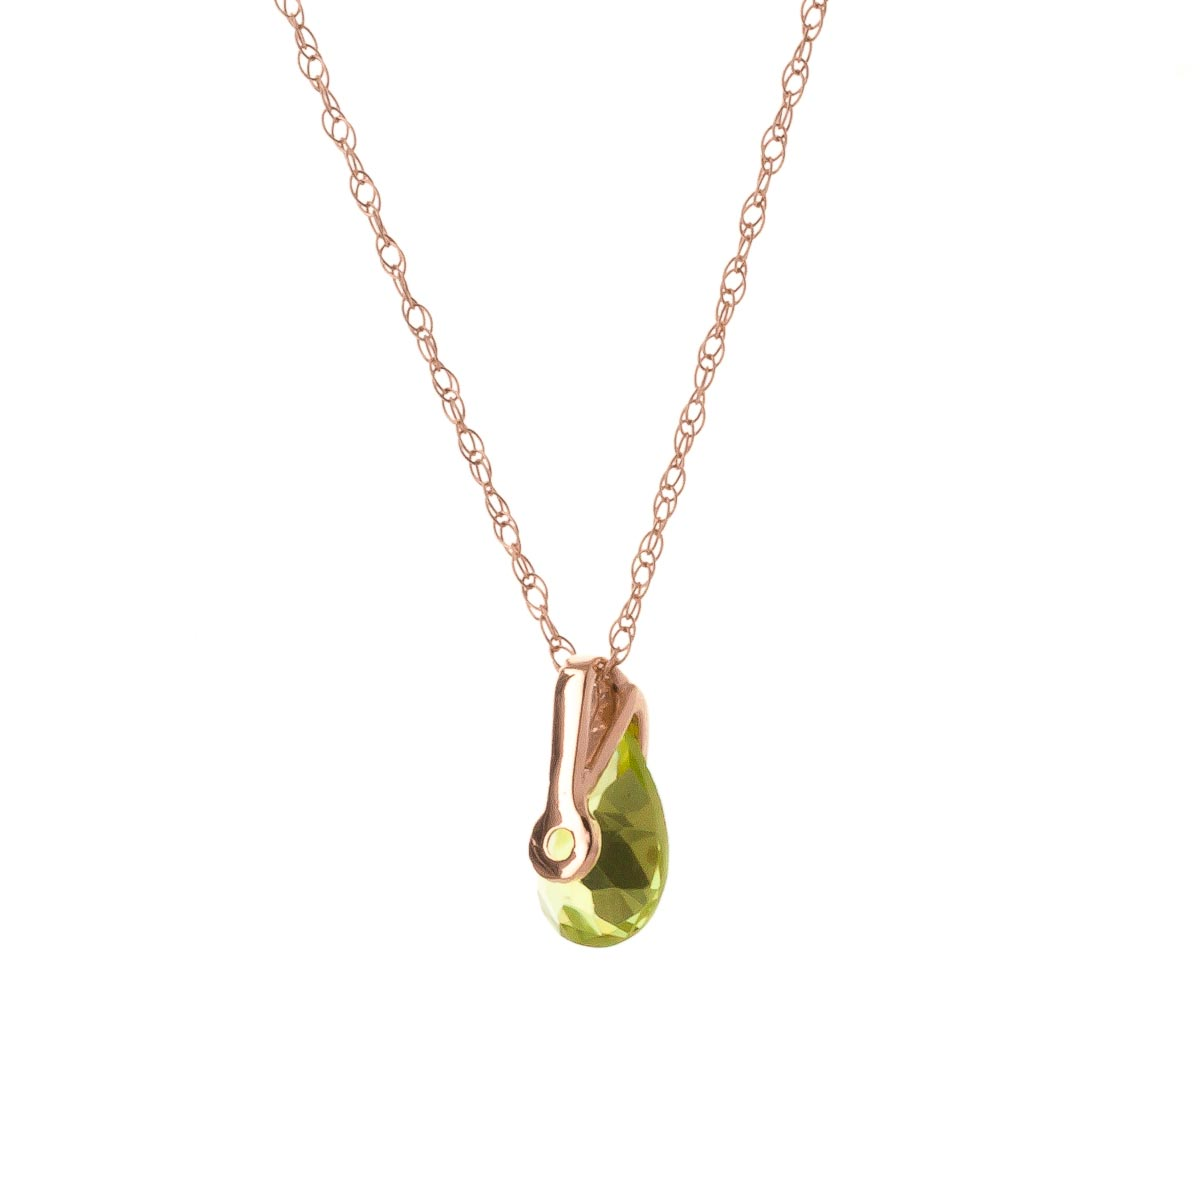 Pear Cut Peridot Pendant Necklace 0.68ct in 14K Rose Gold